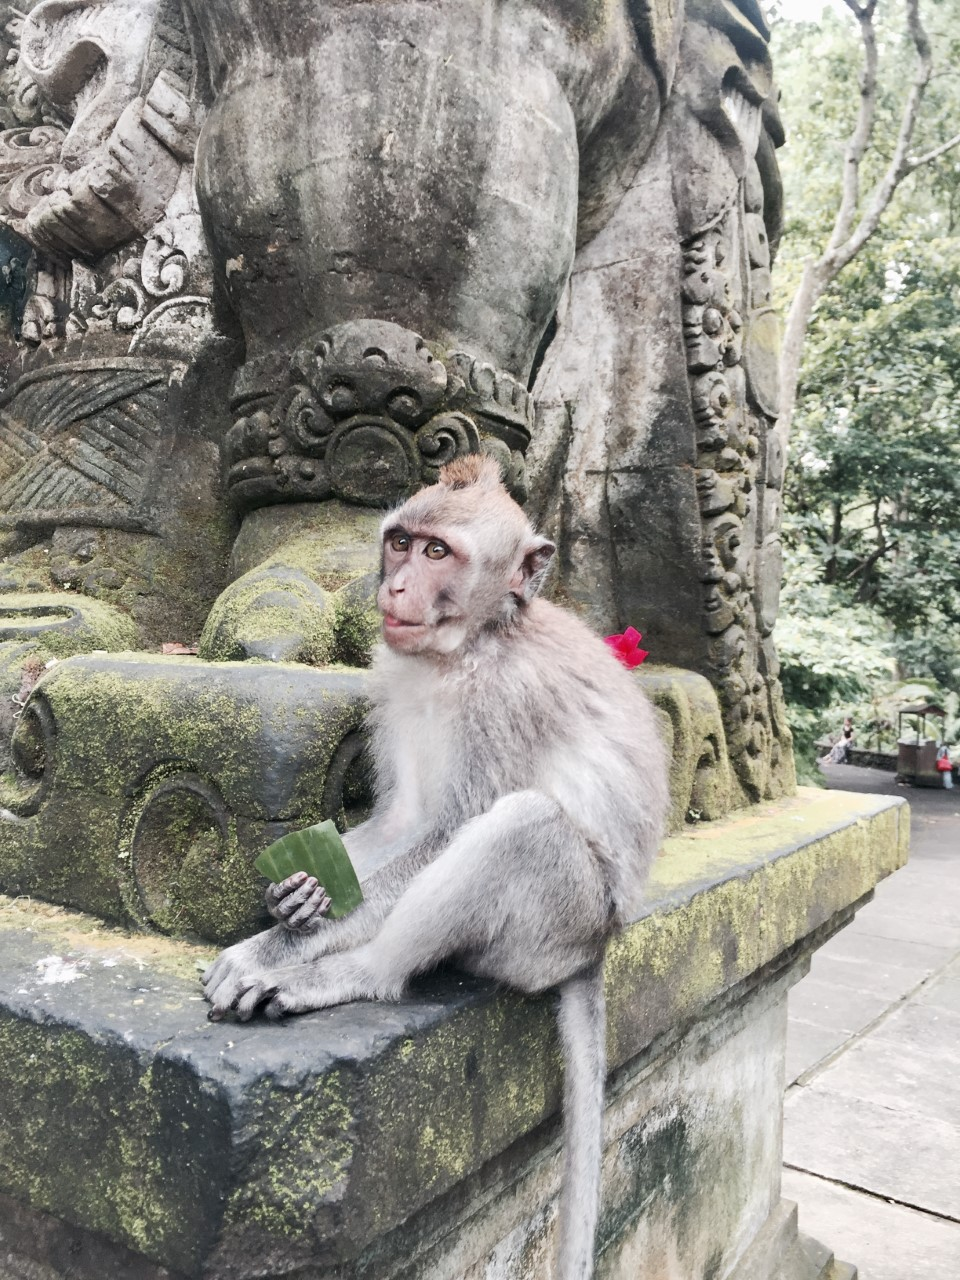 UBUD MONKEY FOREST  - This jungle forest is home to around 700 monkeys.Watch playful monkeys in their natural habitat, swinging through trees, lazing along pathways or feeding on bananas. Walk through ancient temples deep within the forest.It can be one of the most terrifying things if attacked by a Monkey, so be prepared!